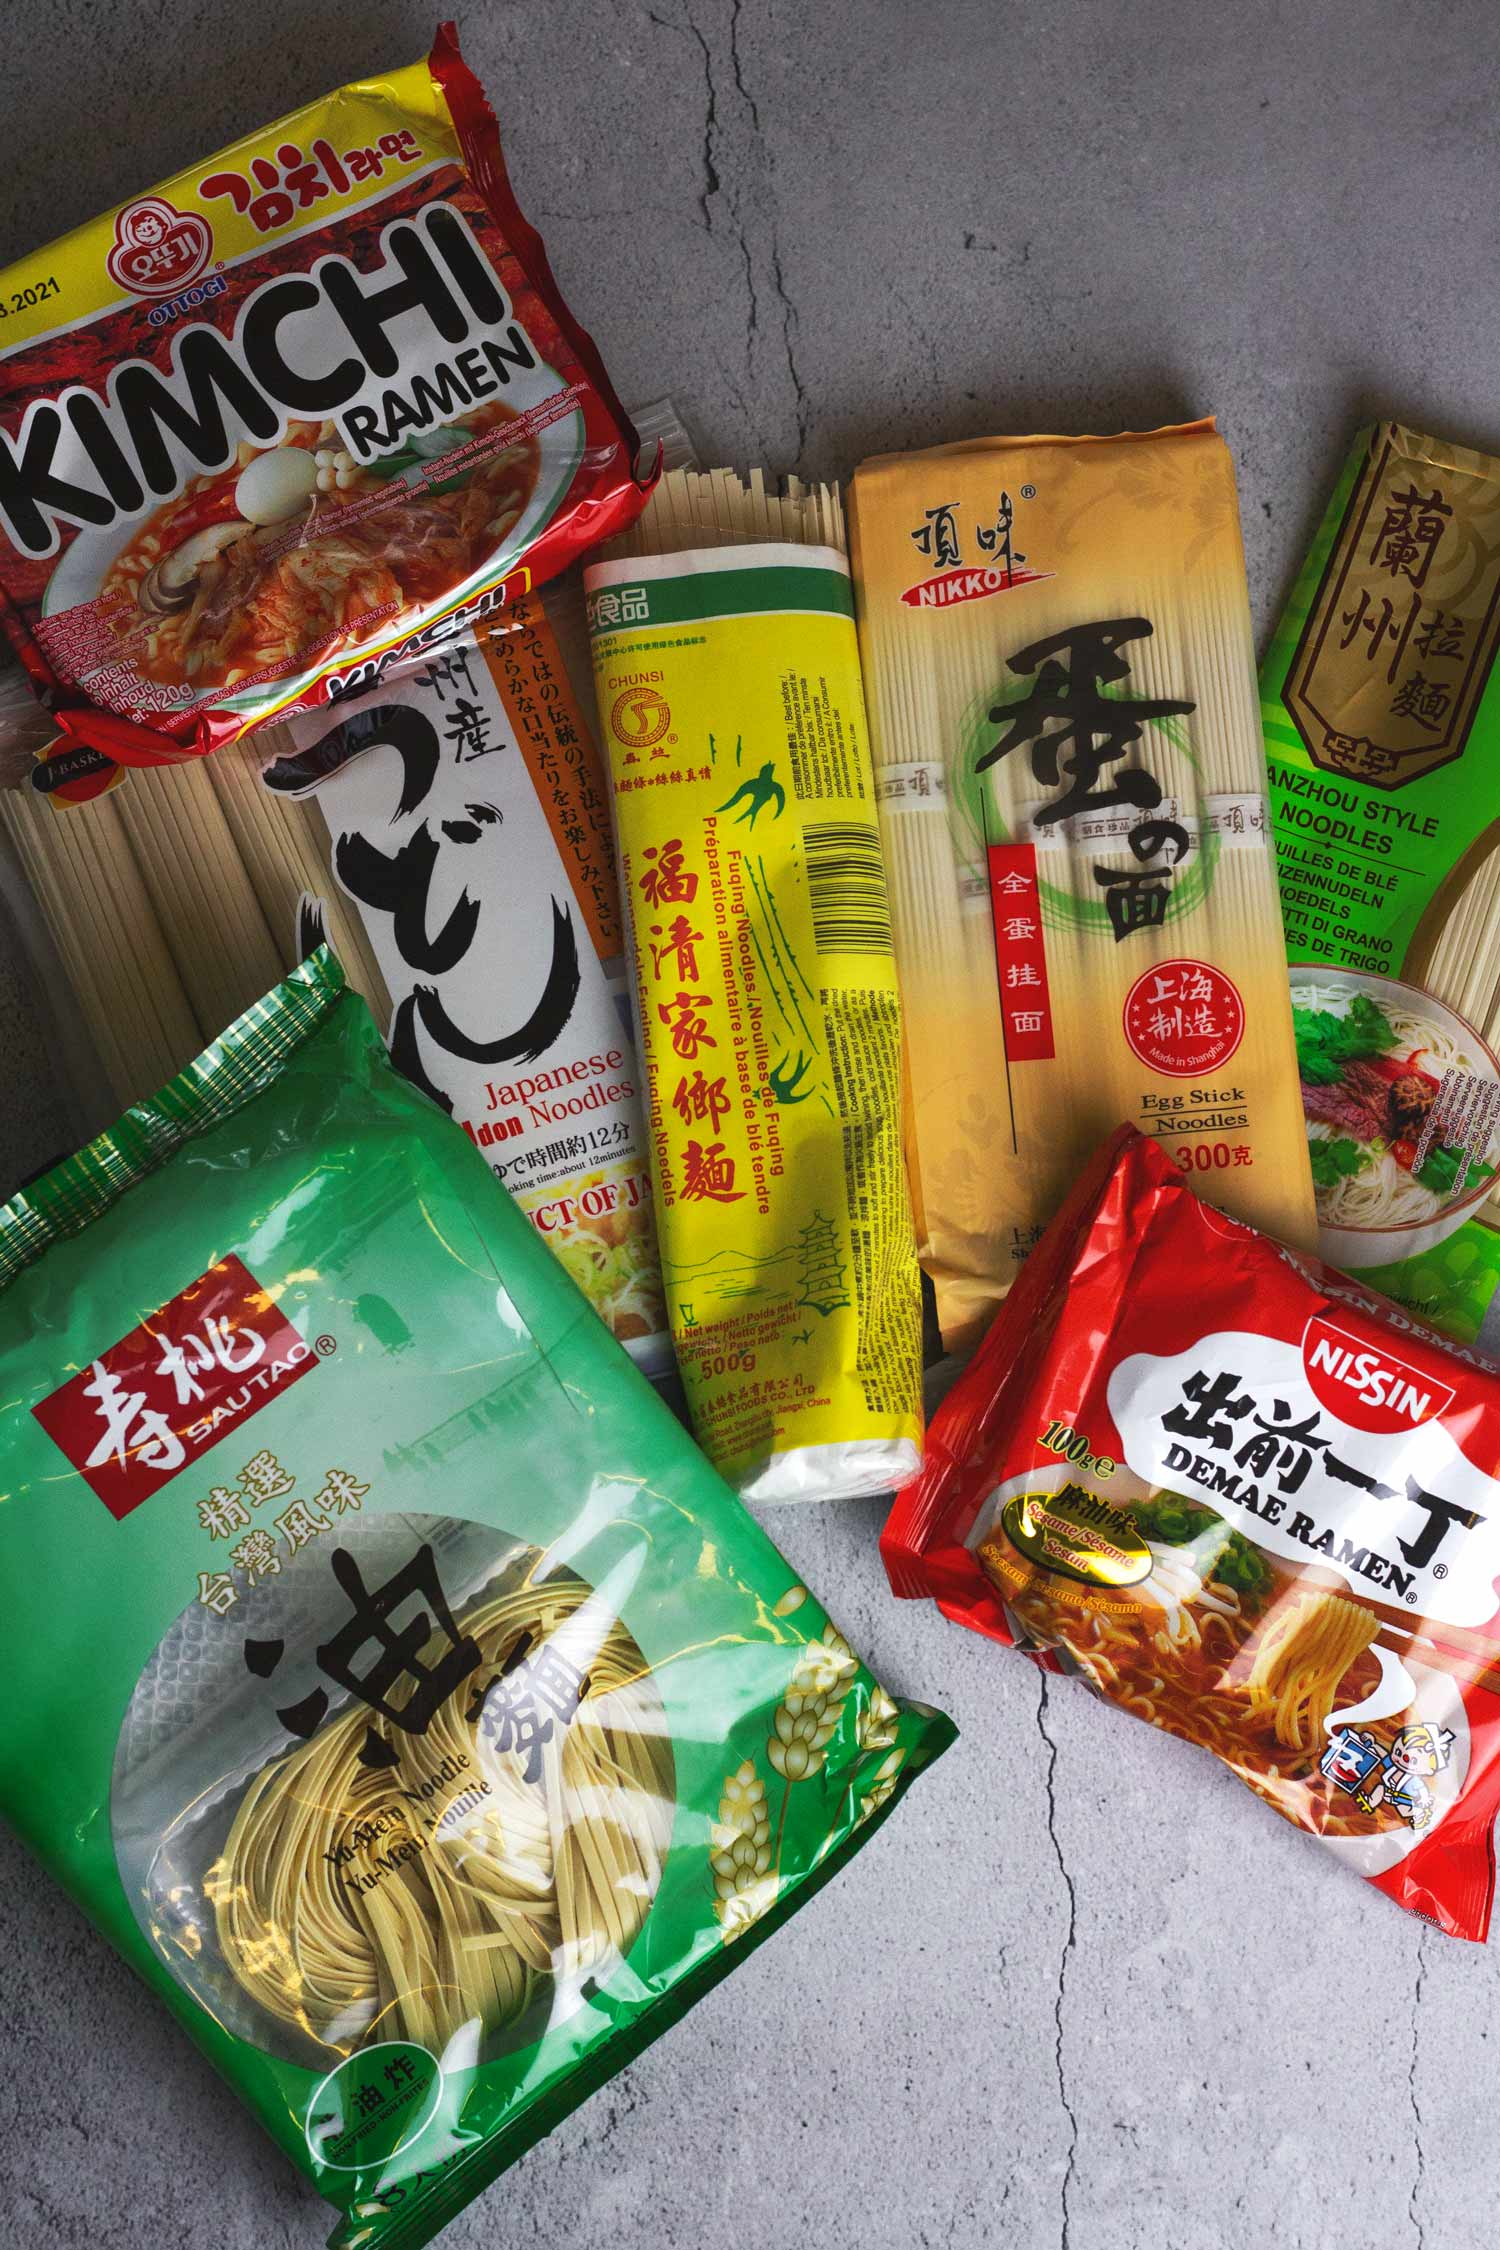 A selection of Chinese and Japanese noodles